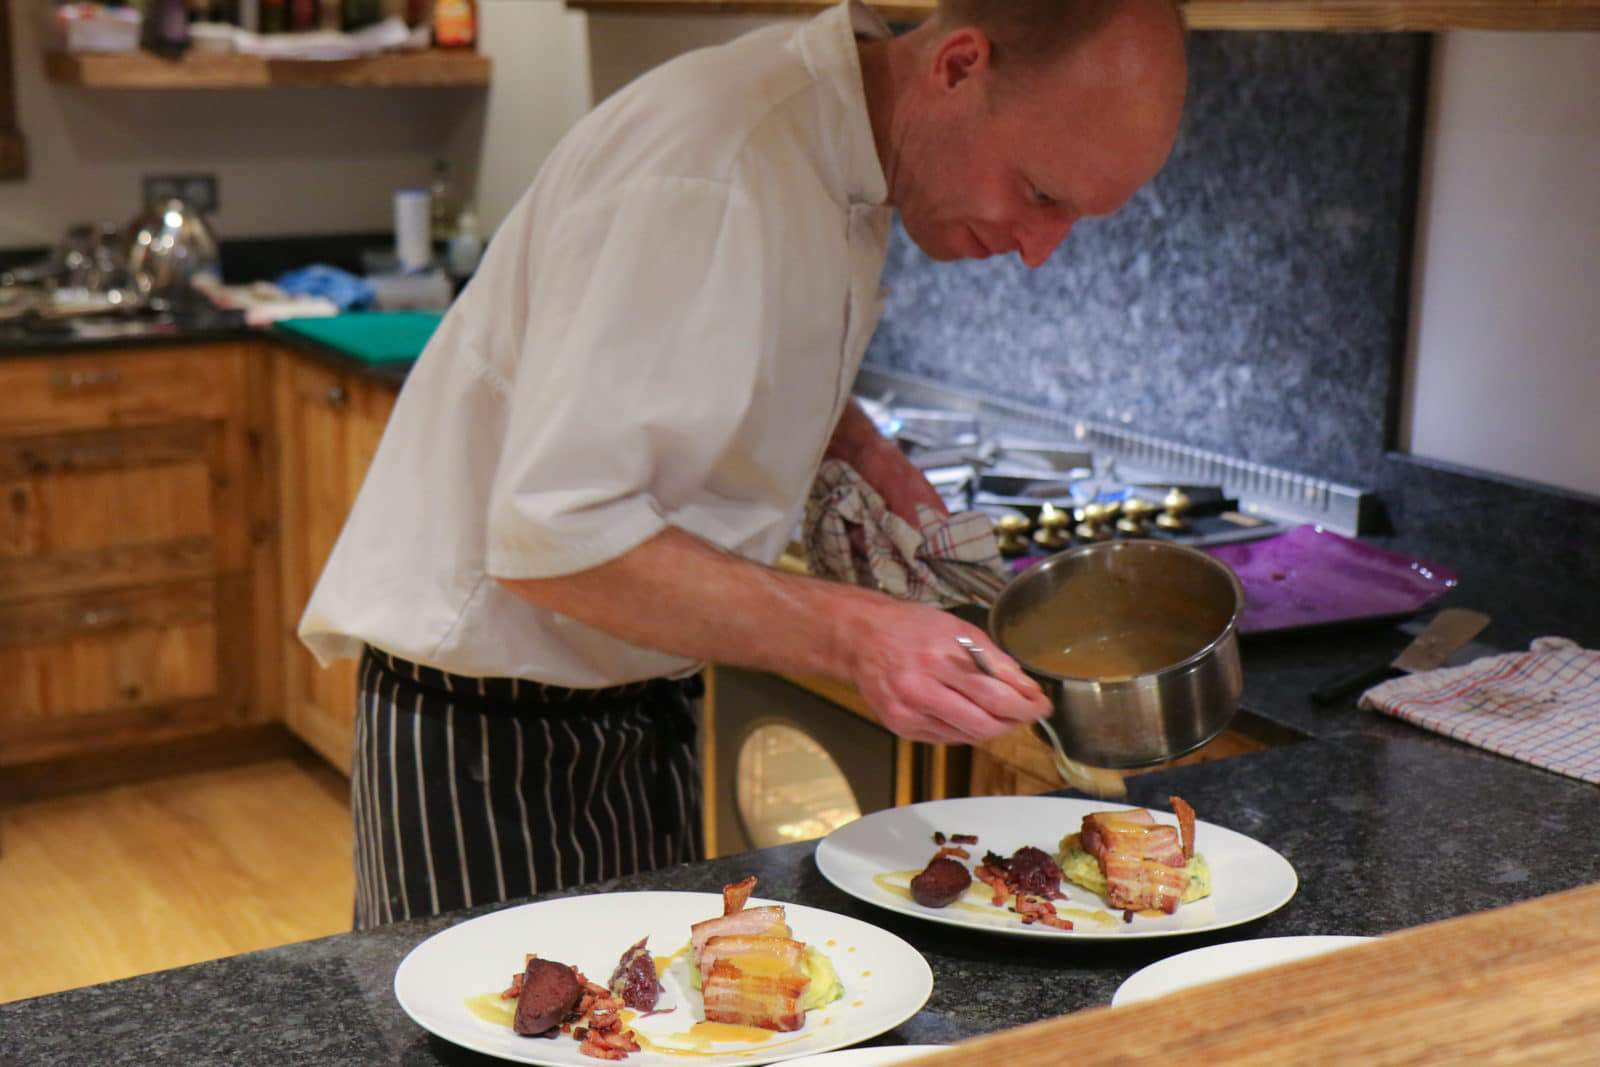 chef plating up dinner